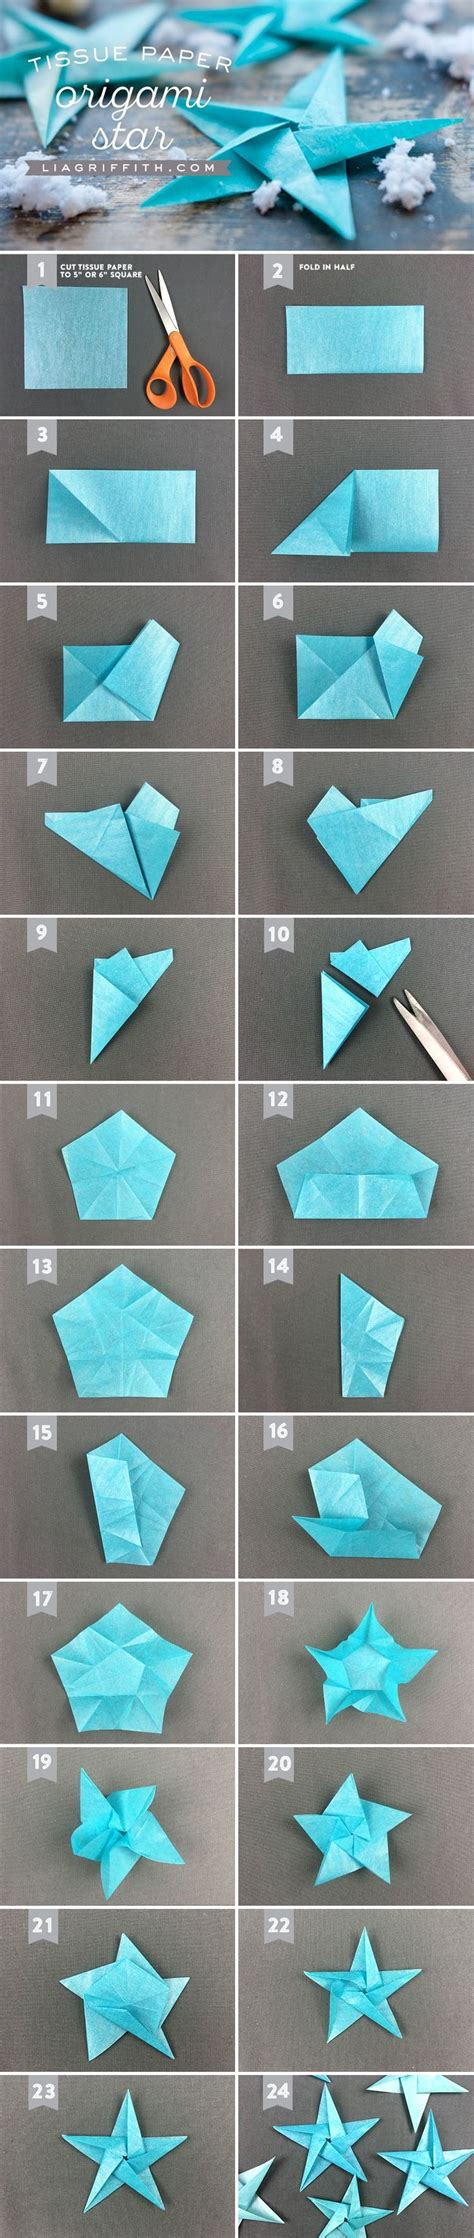 origami christmas decorations step by step best 25 origami ornaments ideas on oragami ornaments oragami ornaments